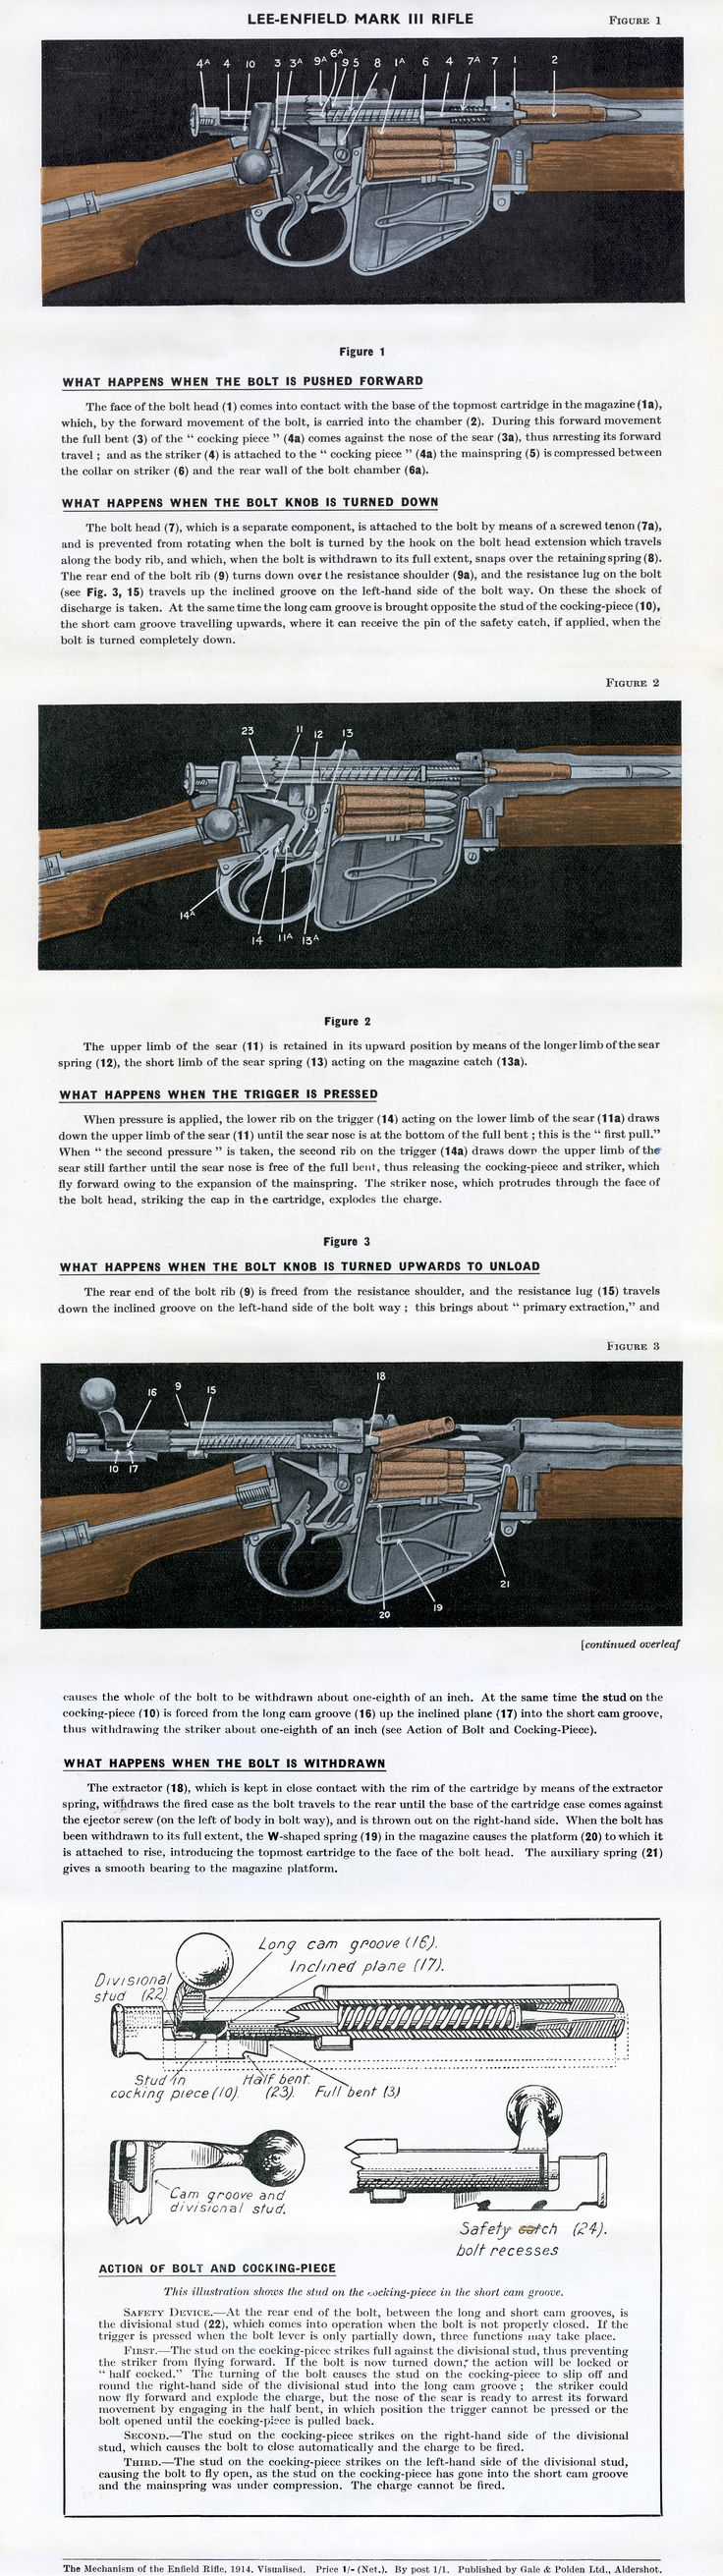 Fold out section of Gale & Polden leaflet from WWII, 'The Mechanism of the Short Rifle Magazine Lee-Enfield Mark III.  Explains the SMLE Mk III* action in great detail, with colour sectional diagrams.